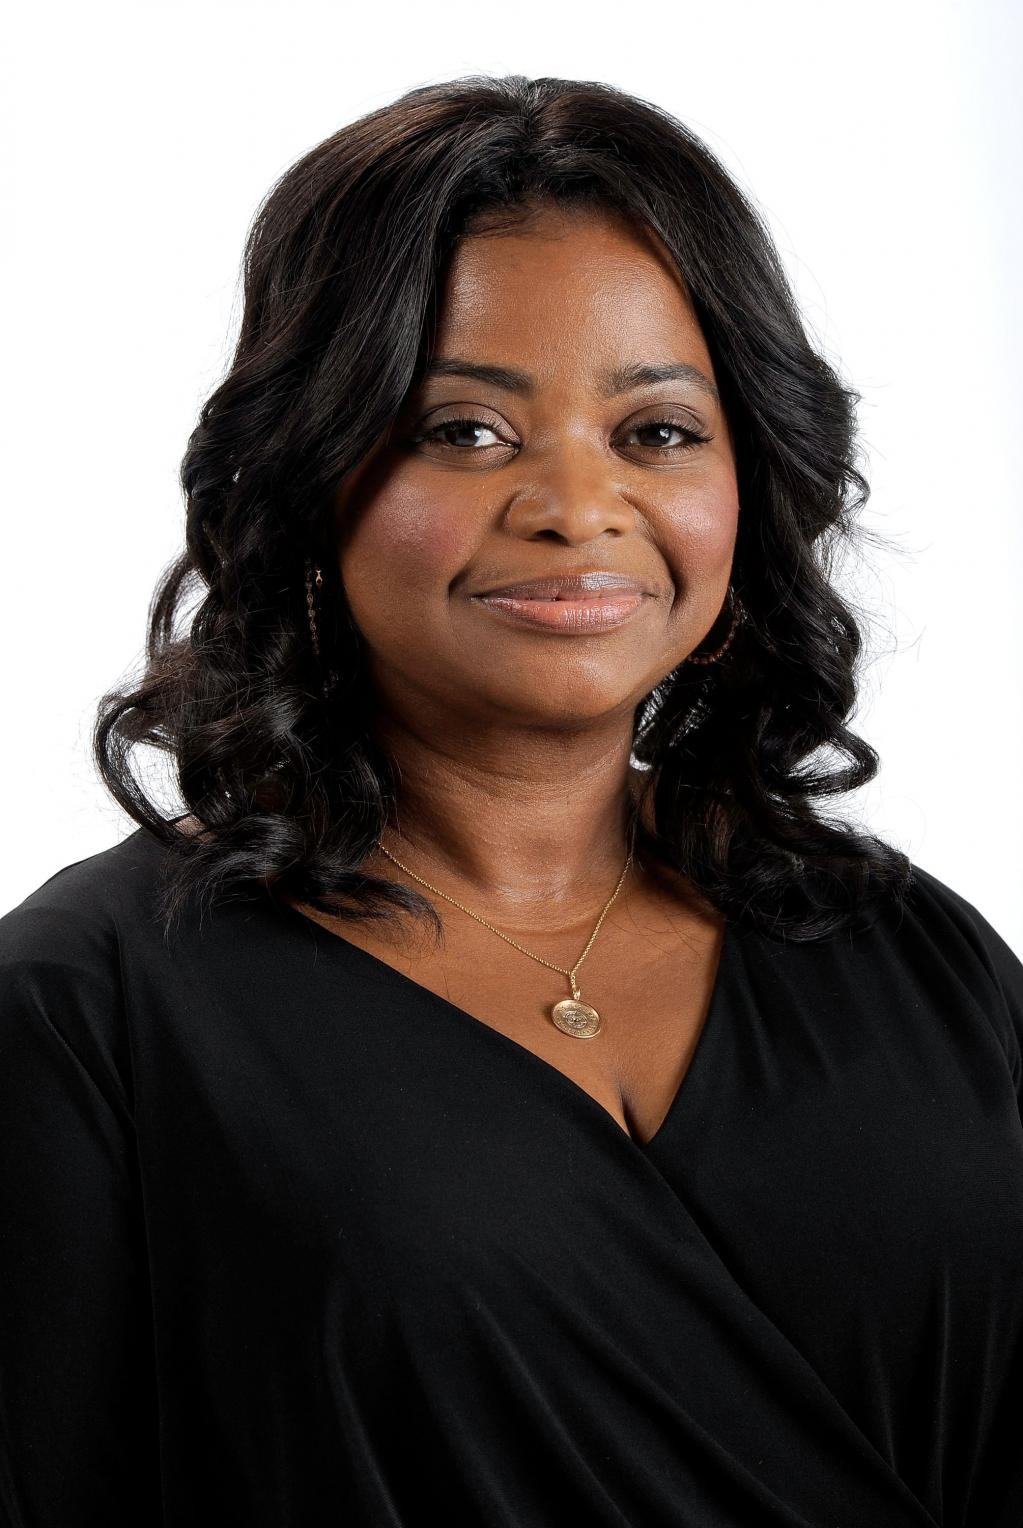 Octavia Spencer (                                           ) - Picture Gallery @ HanCinema